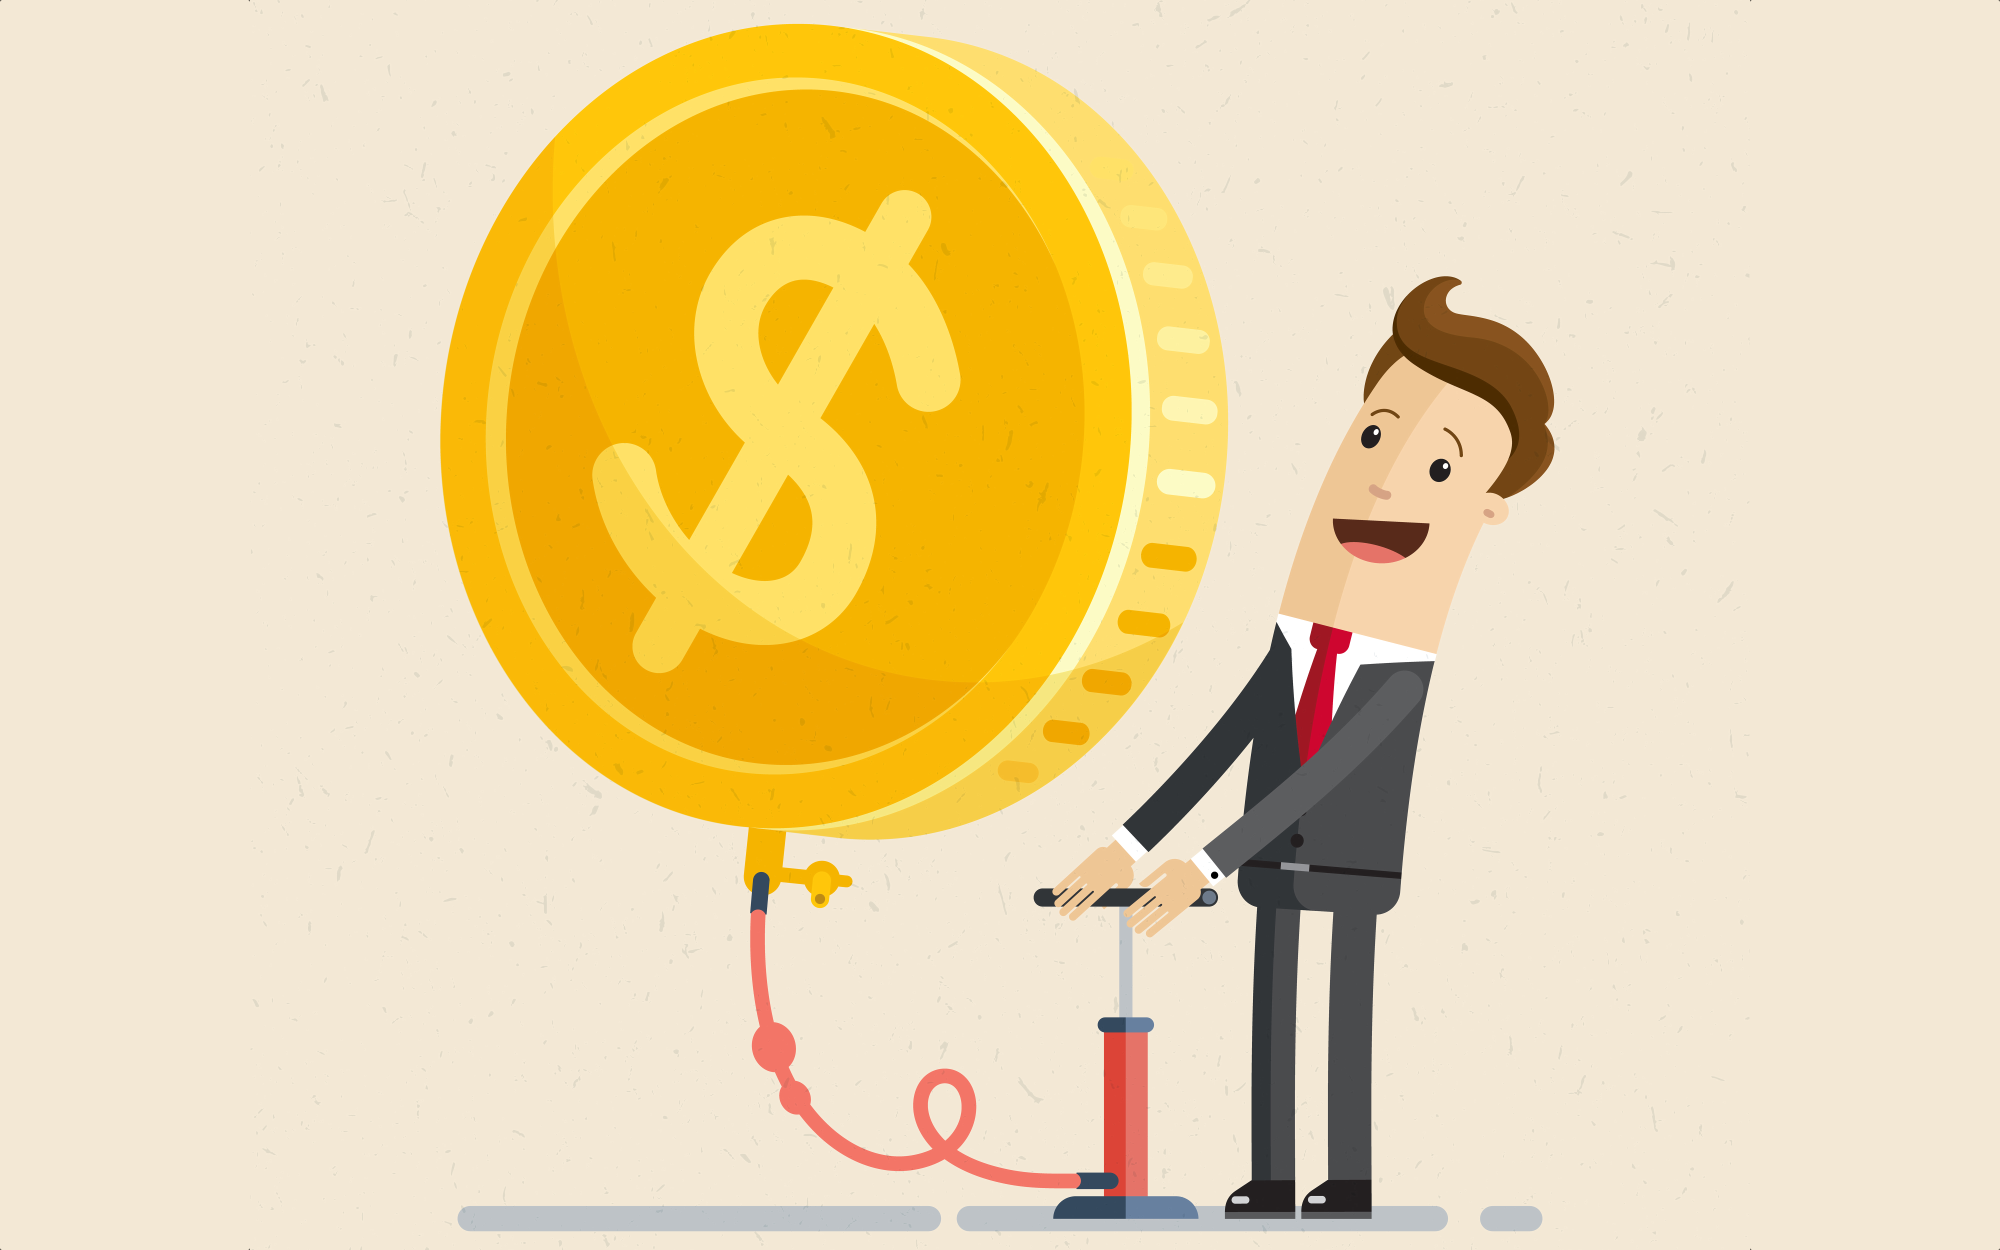 ainsights.dice.com_wp_content_uploads_2019_01_Salary_Increase_Pay_Raise_Better_Pay_Dice.